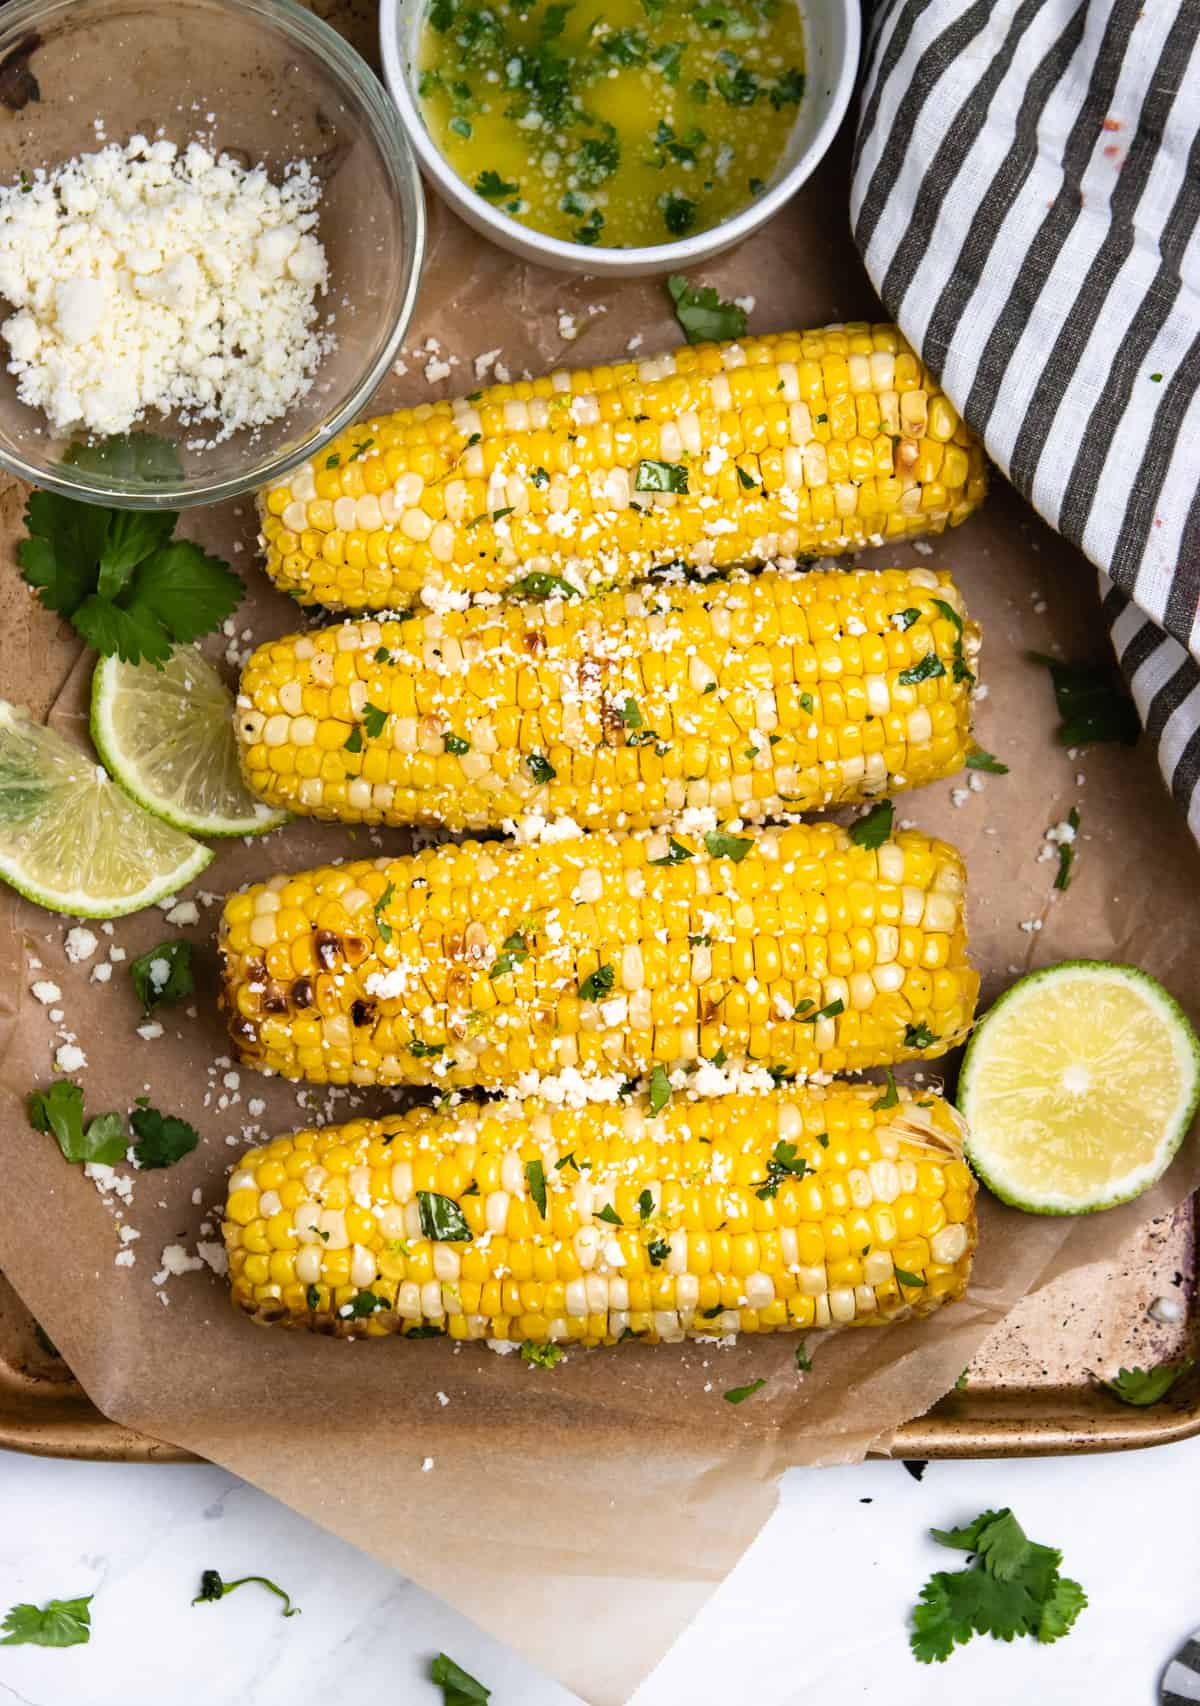 Overview of corn on the cob with limes and cojita cheese on parchment.